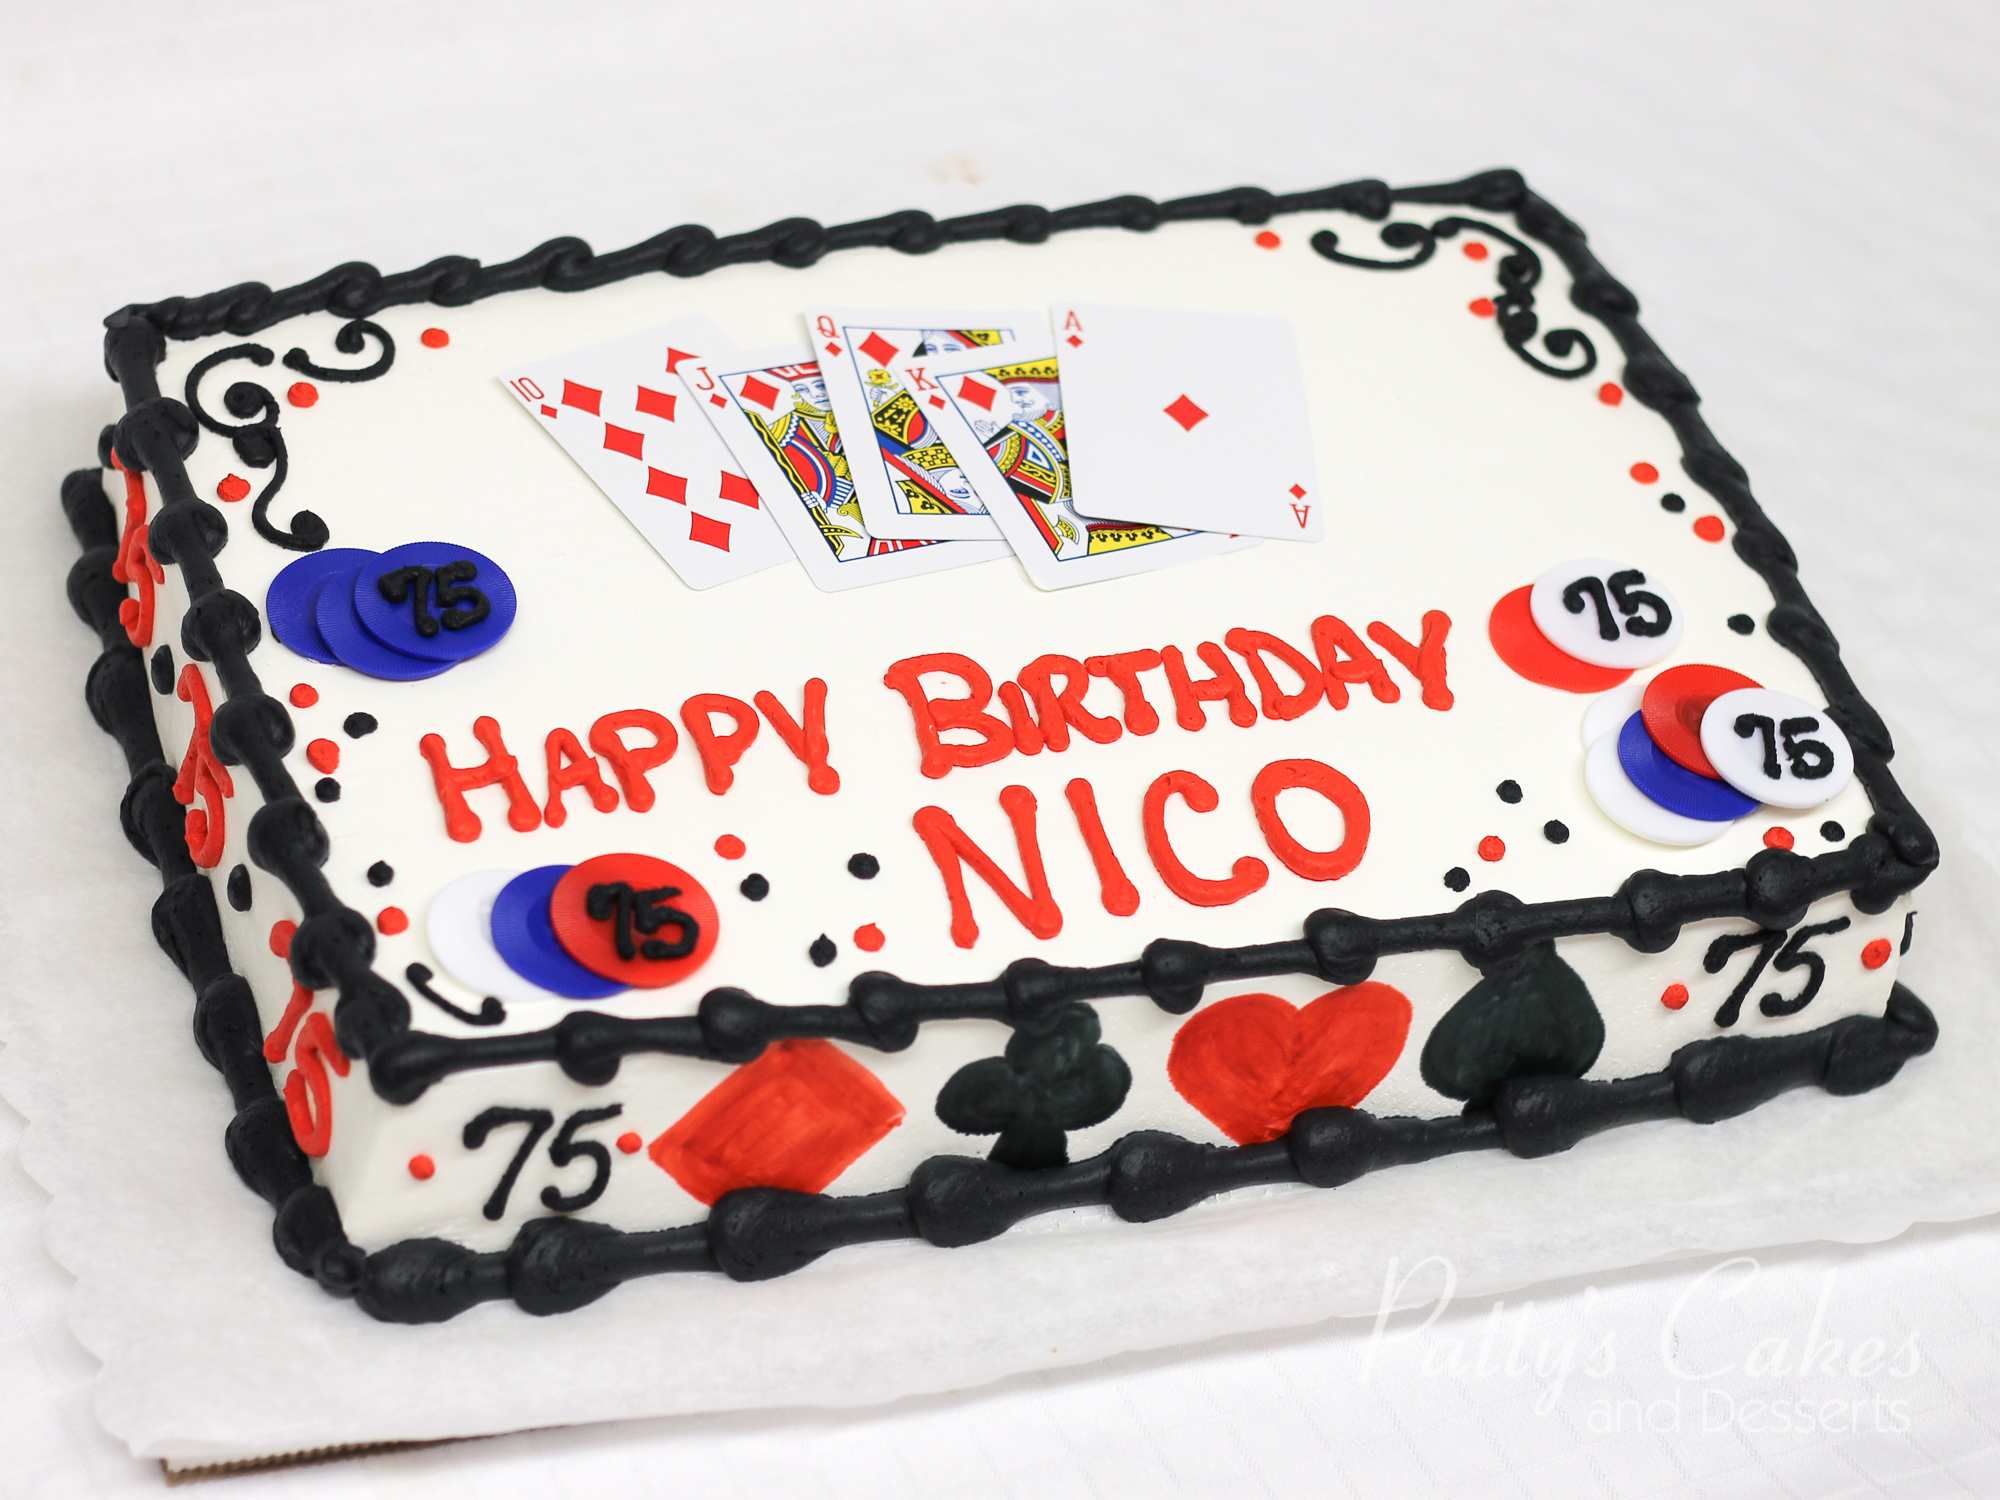 Pleasant Photo Of A Casino Poker Theme Birthday Cake Pattys Cakes And Funny Birthday Cards Online Barepcheapnameinfo